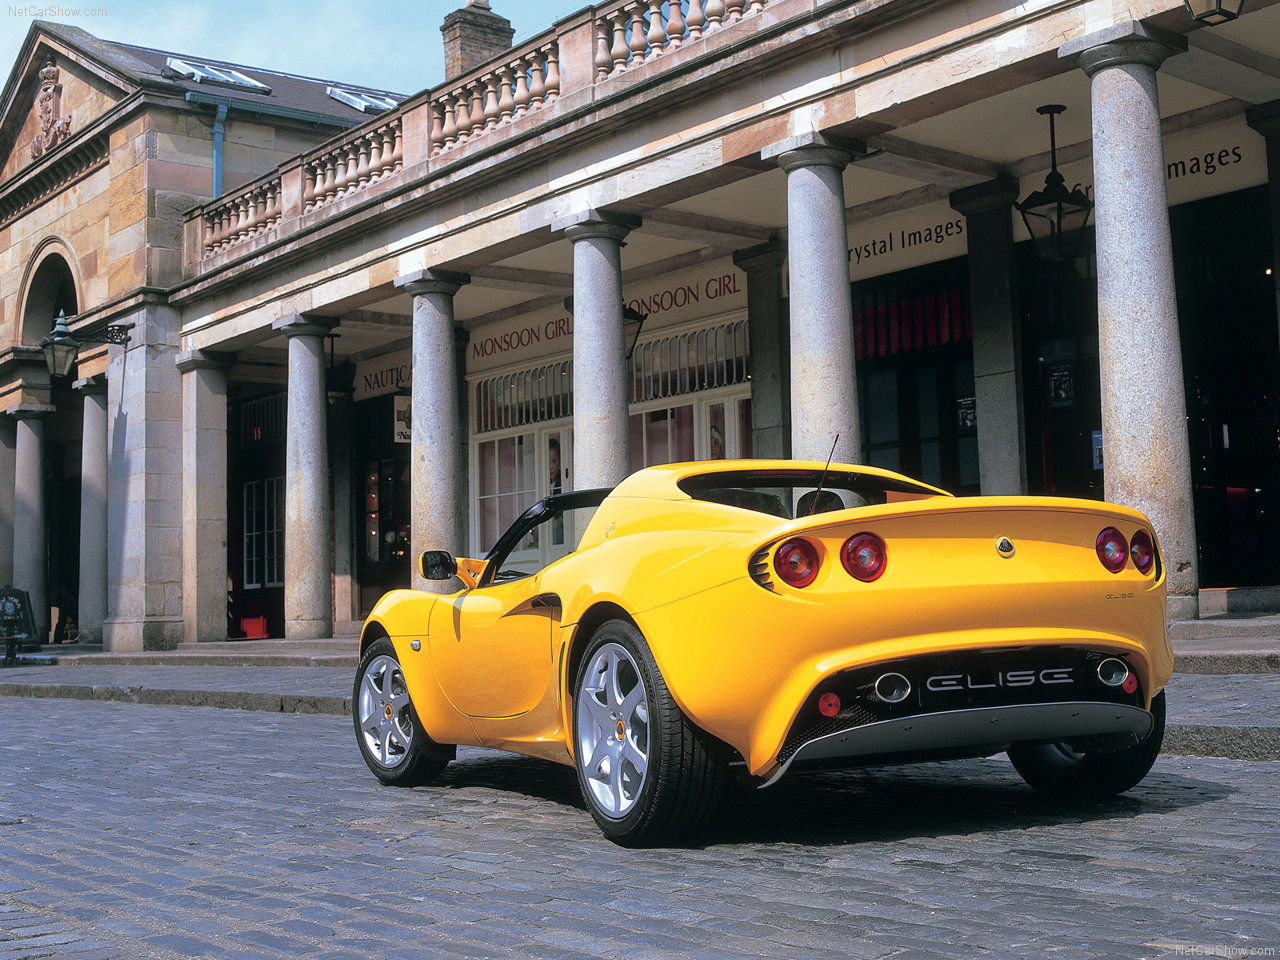 lotus-elise_2004_1280x960_wallpaper_07